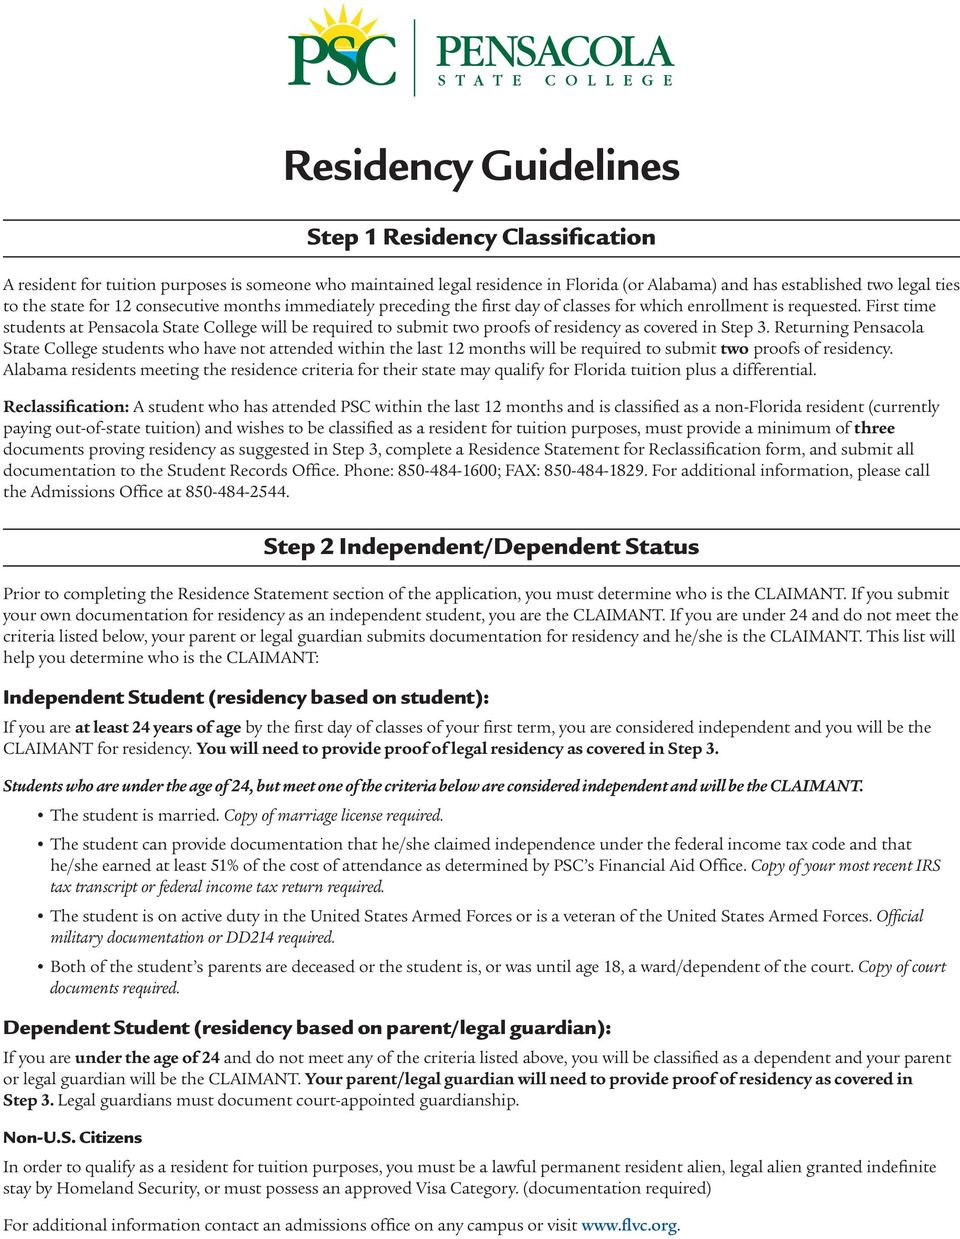 First time students at Pensacola State College will be required to submit two proofs of residency as covered in Step 3.